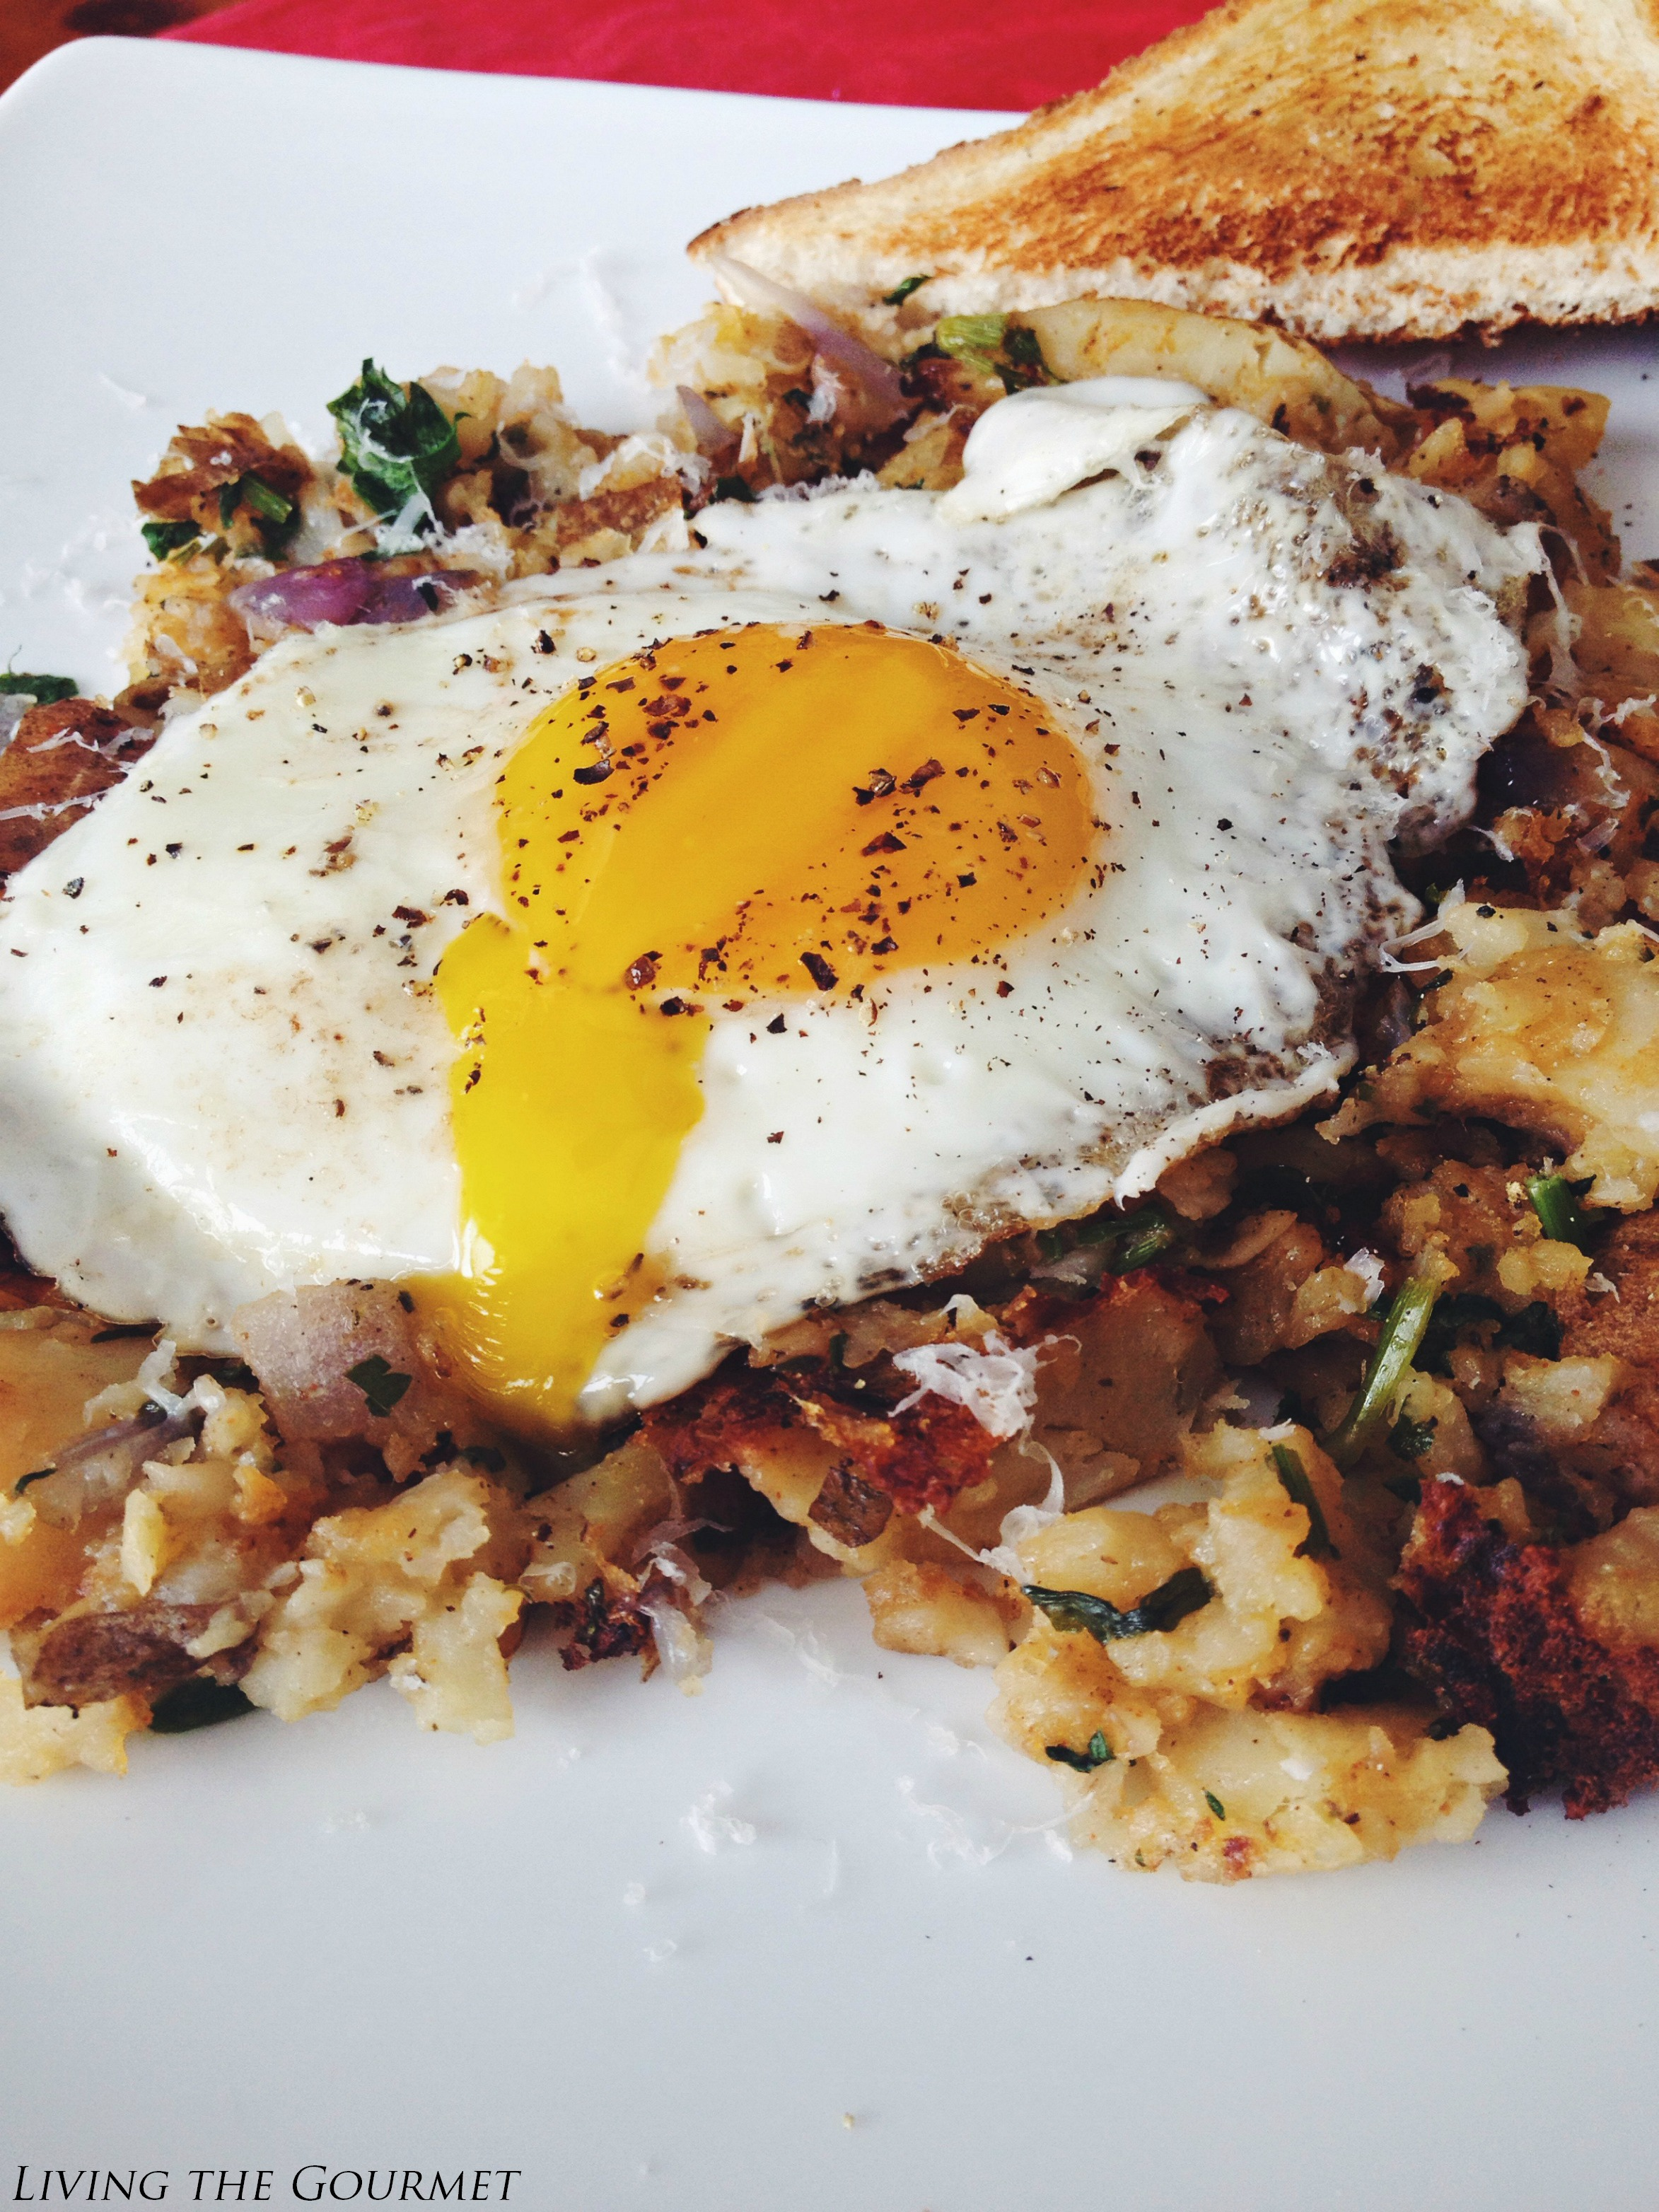 Living the Gourmet: Home Fries and Eggs